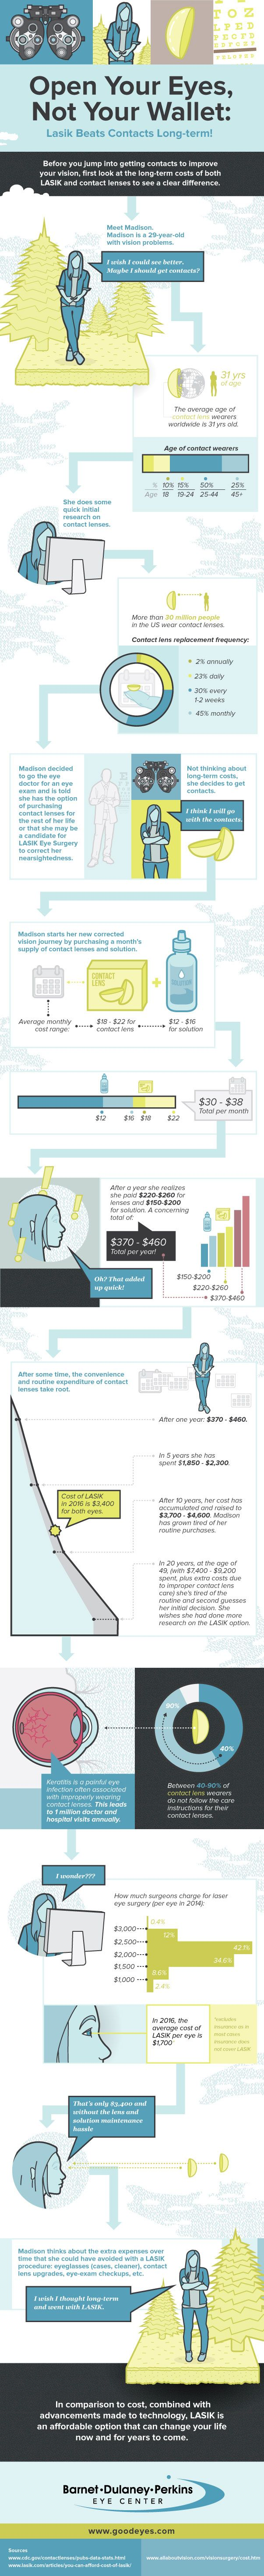 Open Your Eyes, Not Your Wallet #Infographic